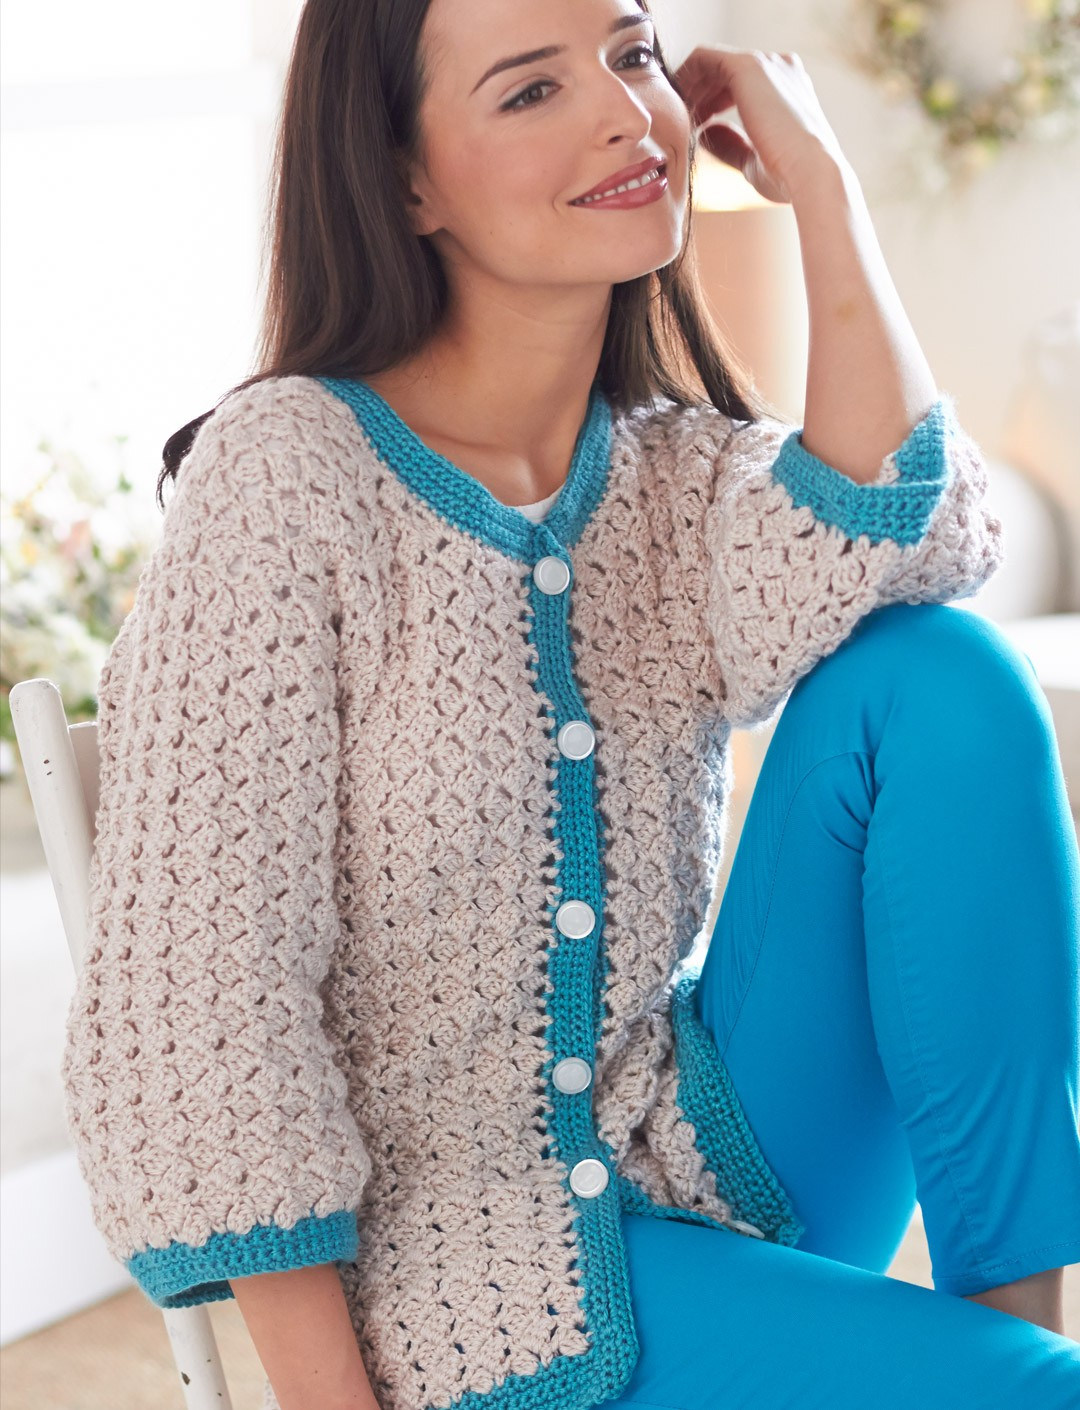 Crochet Patterns For Women s Cardigans : Bernat Cluster Stitch Cardigan, Crochet Pattern ...